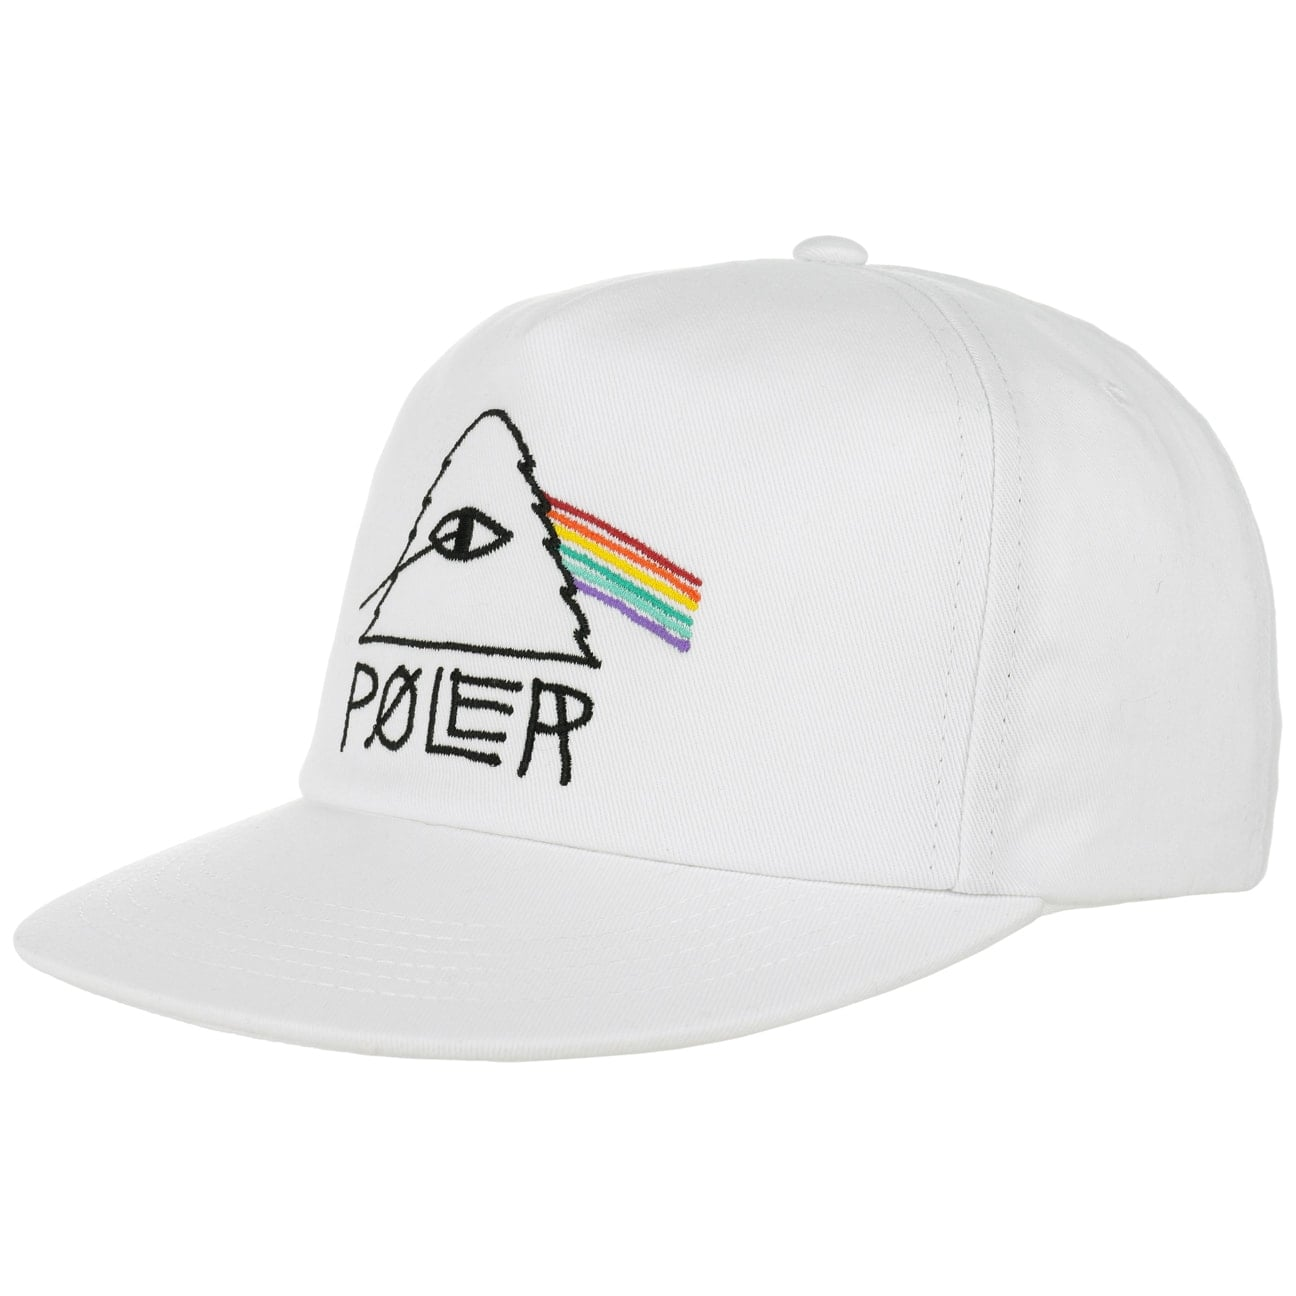 Casquette Psychedelic Snapback 2 by Poler  baseball cap